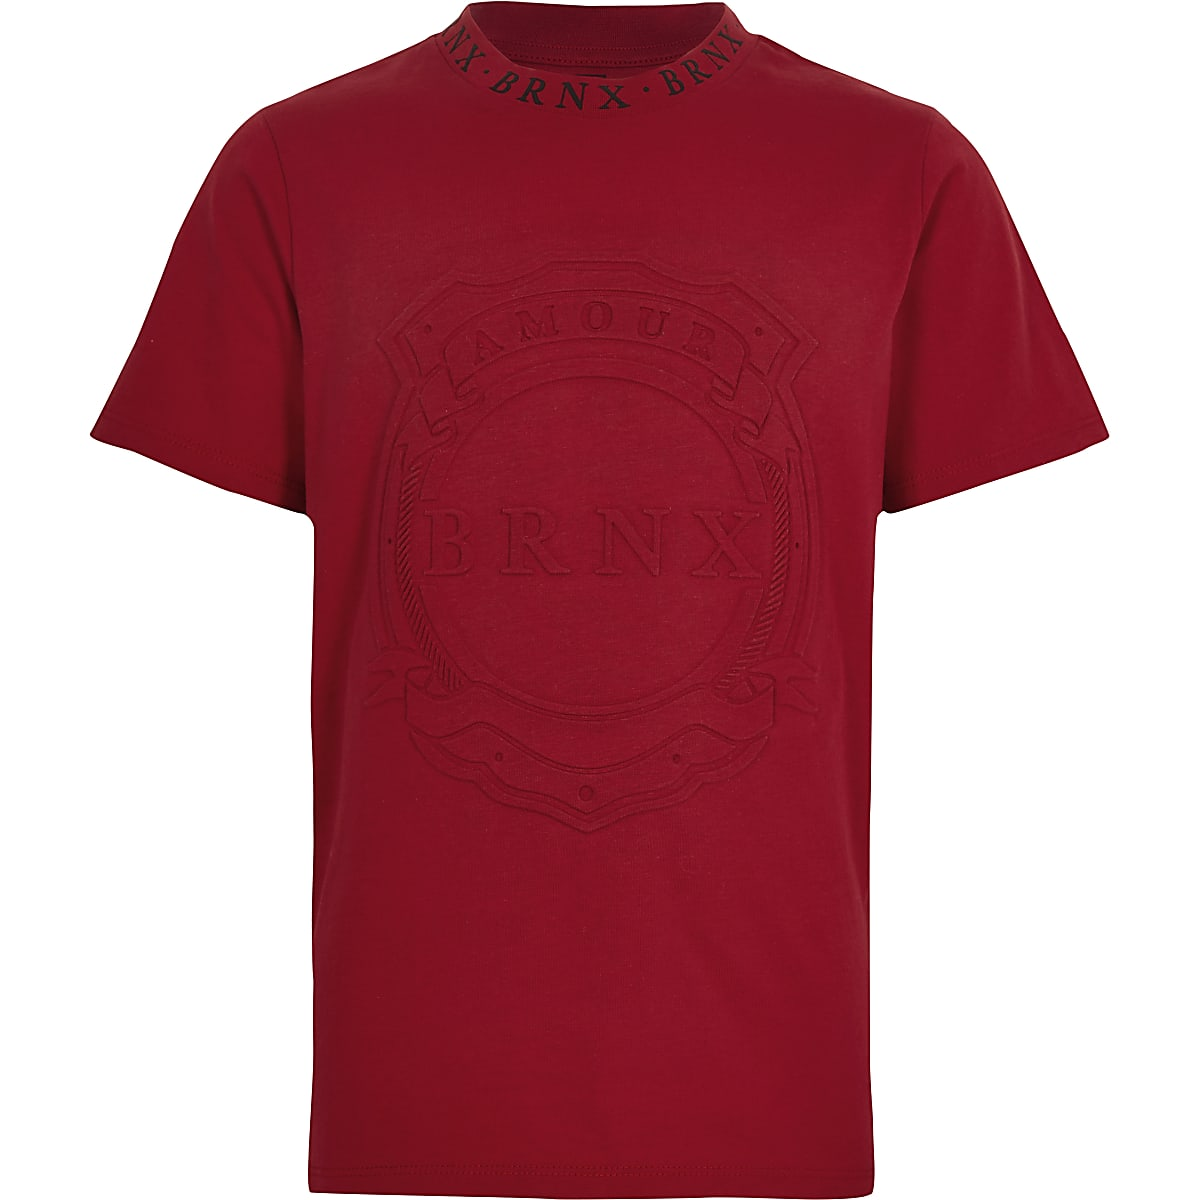 Boys red 'Brnx' short sleeve T-shirt